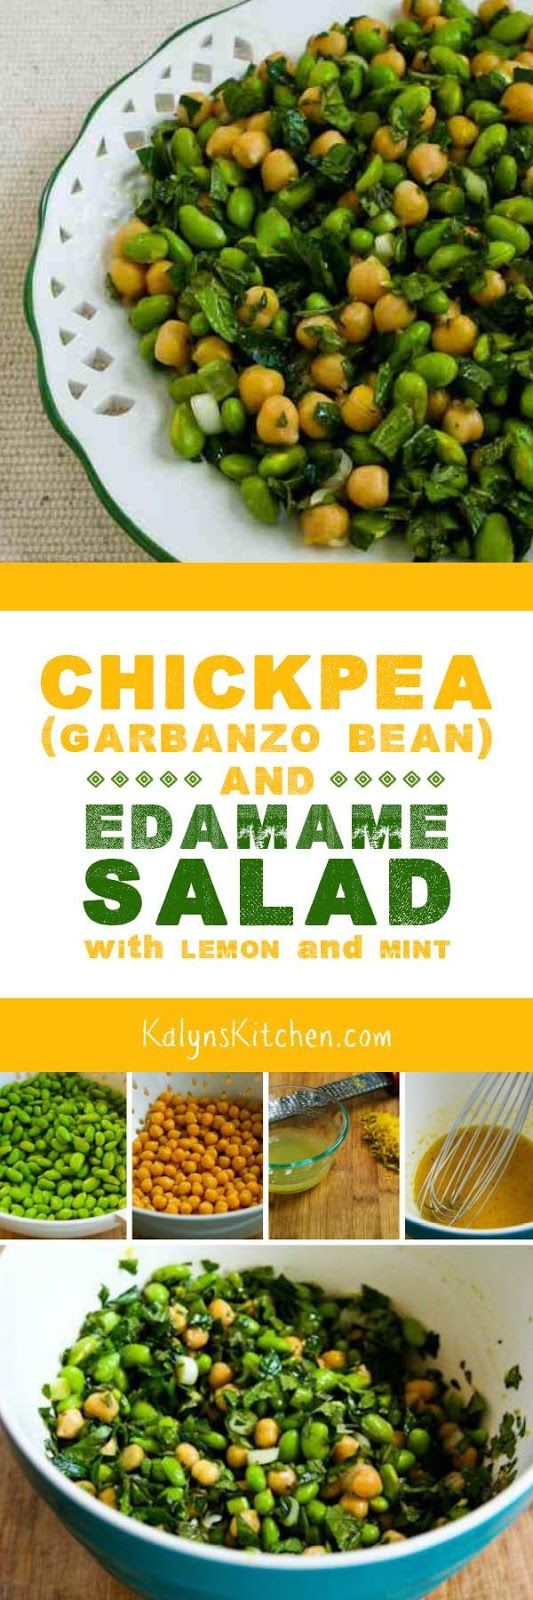 I'm crazy about fresh mint in salads, and this amazing Chickpea (Garbanzo Bean) and Edamame Salad with Lemon and Mint is gluten-free, dairy-free, and South Beach Diet friendly! [from KalynsKitchen.com]